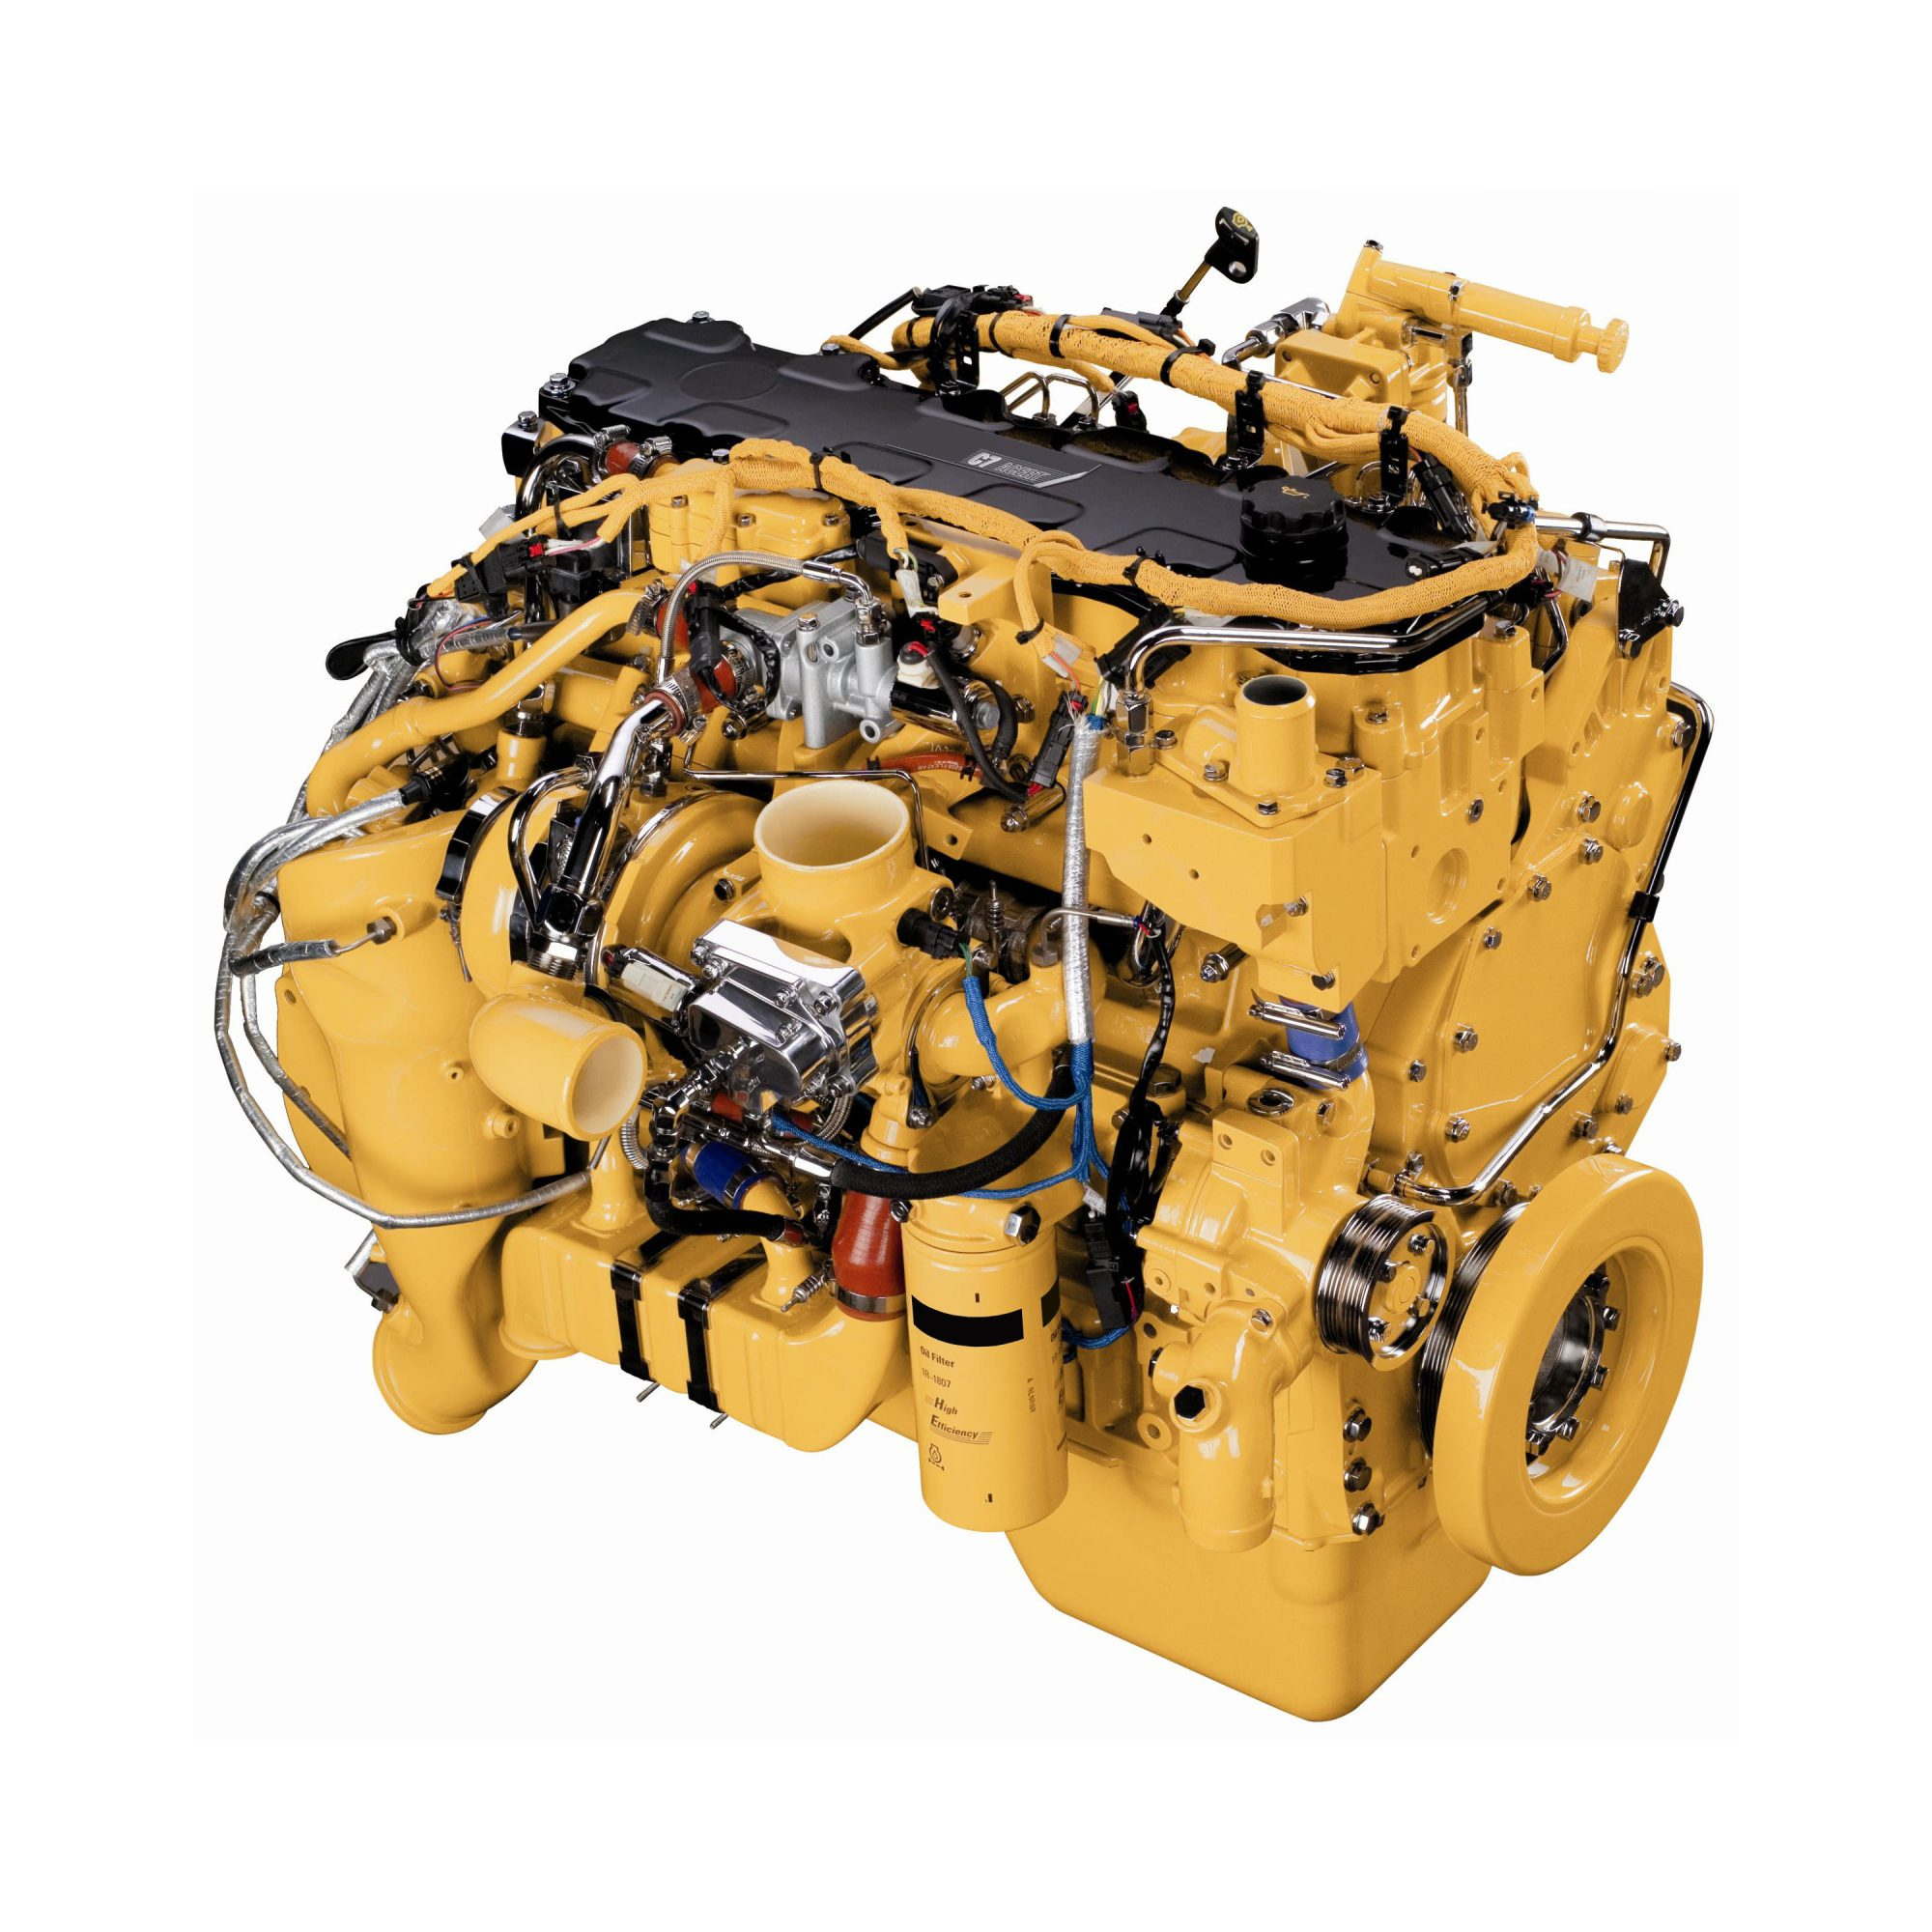 hight resolution of caterpillar c15 caterpillar c13 caterpillar c7 caterpillar engine